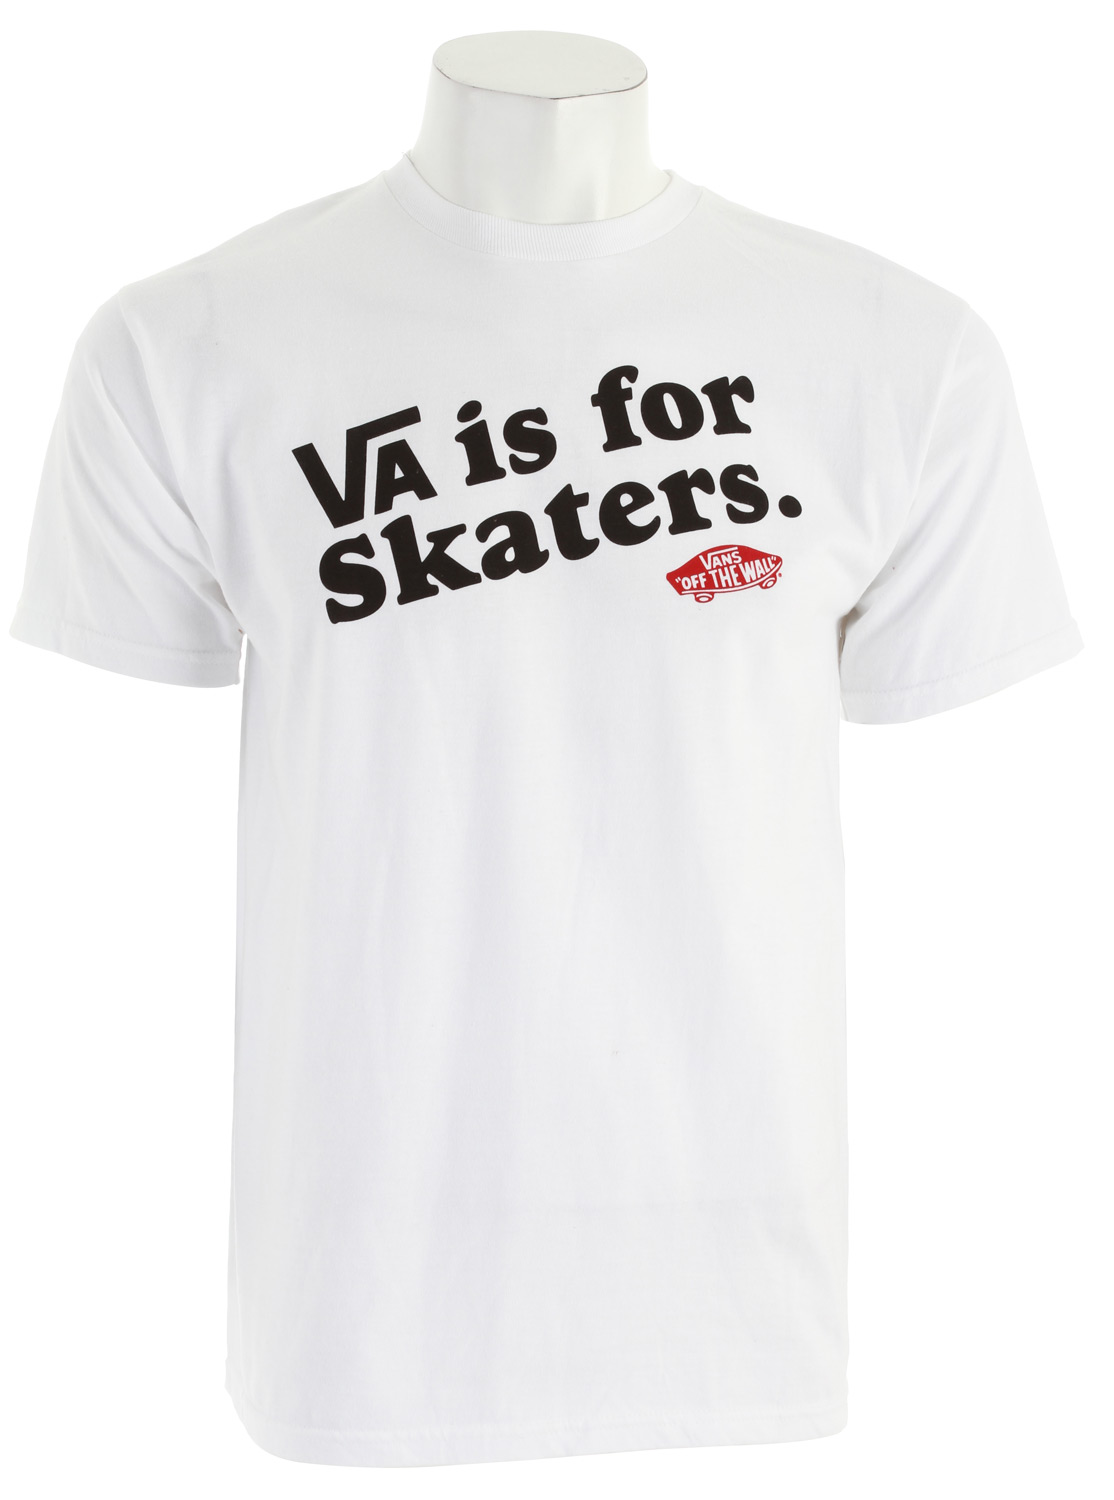 Skateboard Key Features of The Vans VA Is For T-Shirt: Regular Fit Crew Neck Short Sleeve - $10.95